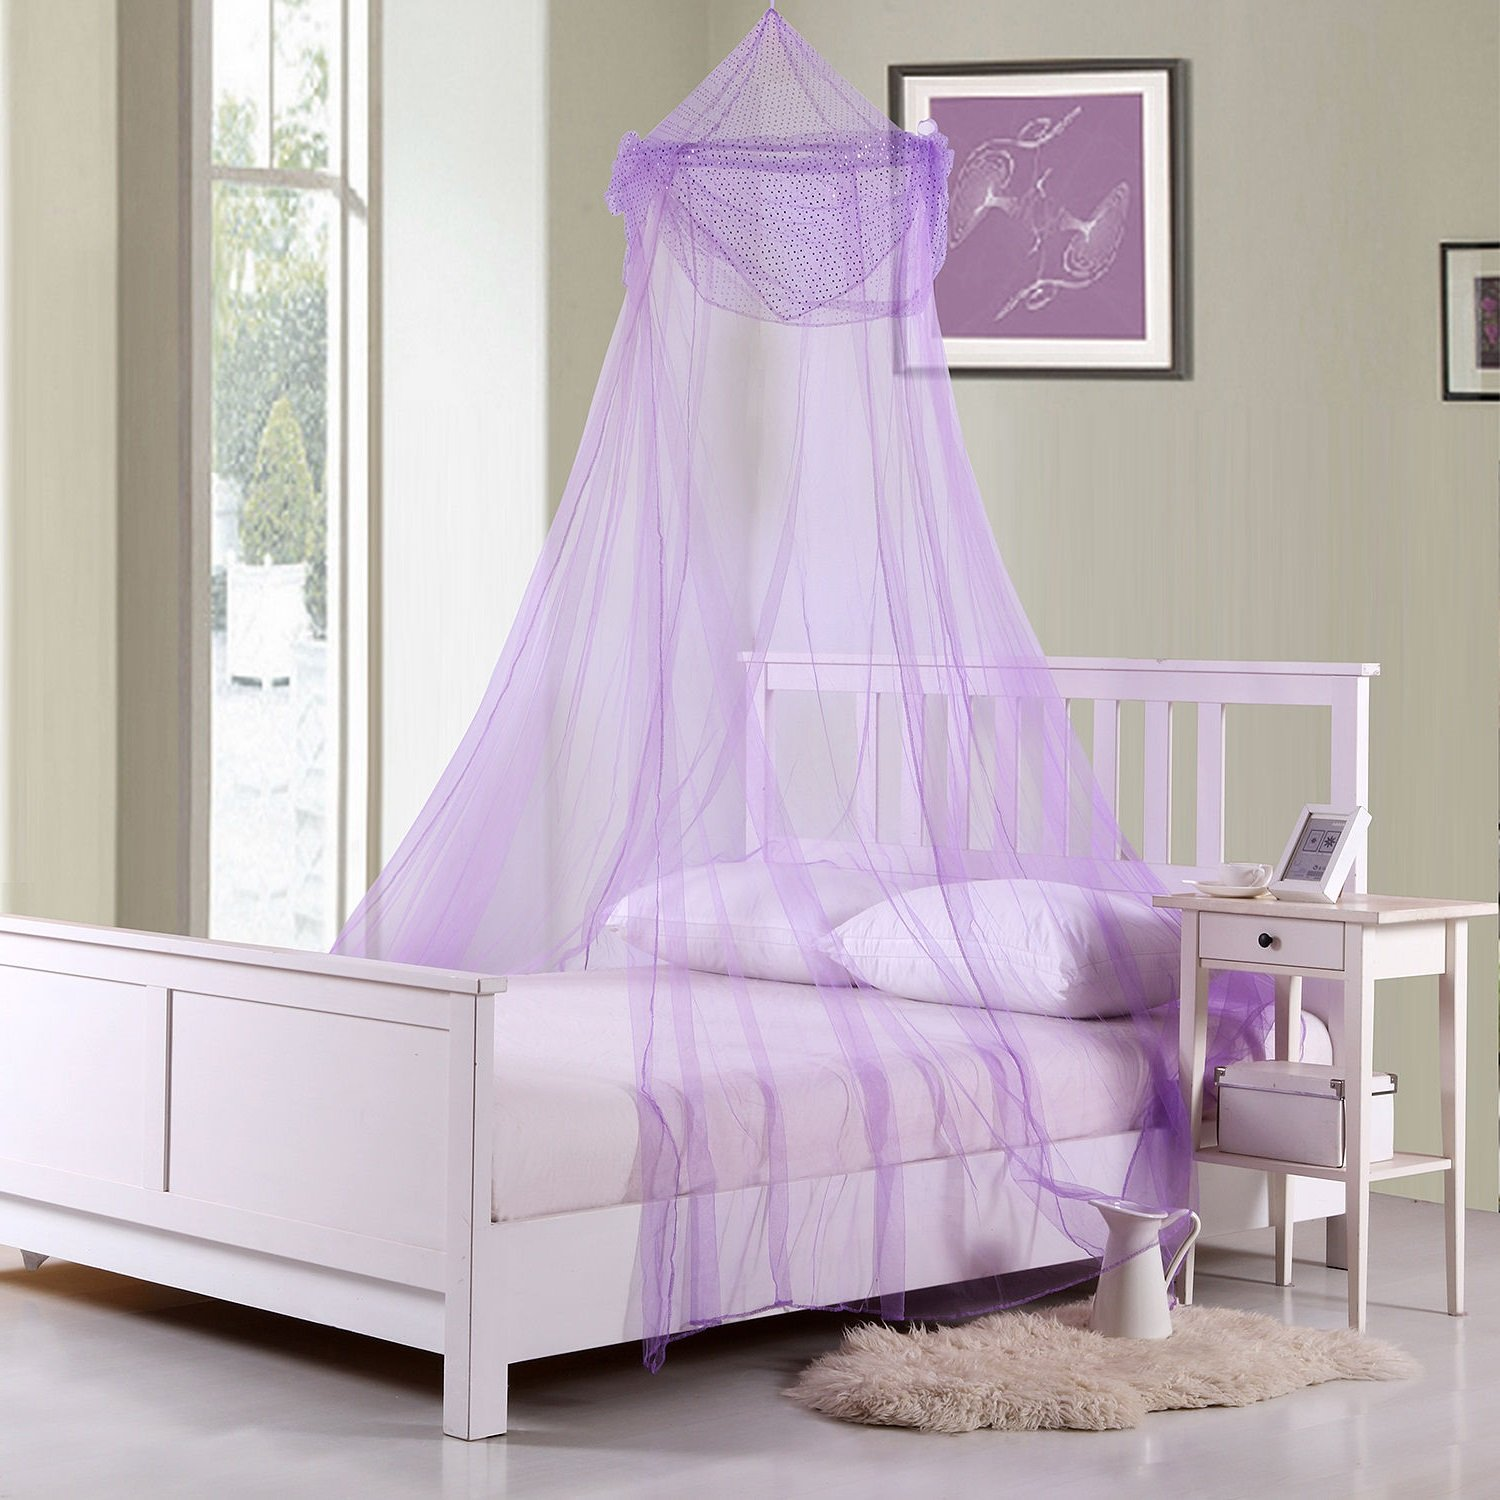 Fantastic Collapsible Purple Sheer Bed Canopy For Kids Room Decor For Boys Teen Girl Room Decor Download Free Architecture Designs Rallybritishbridgeorg